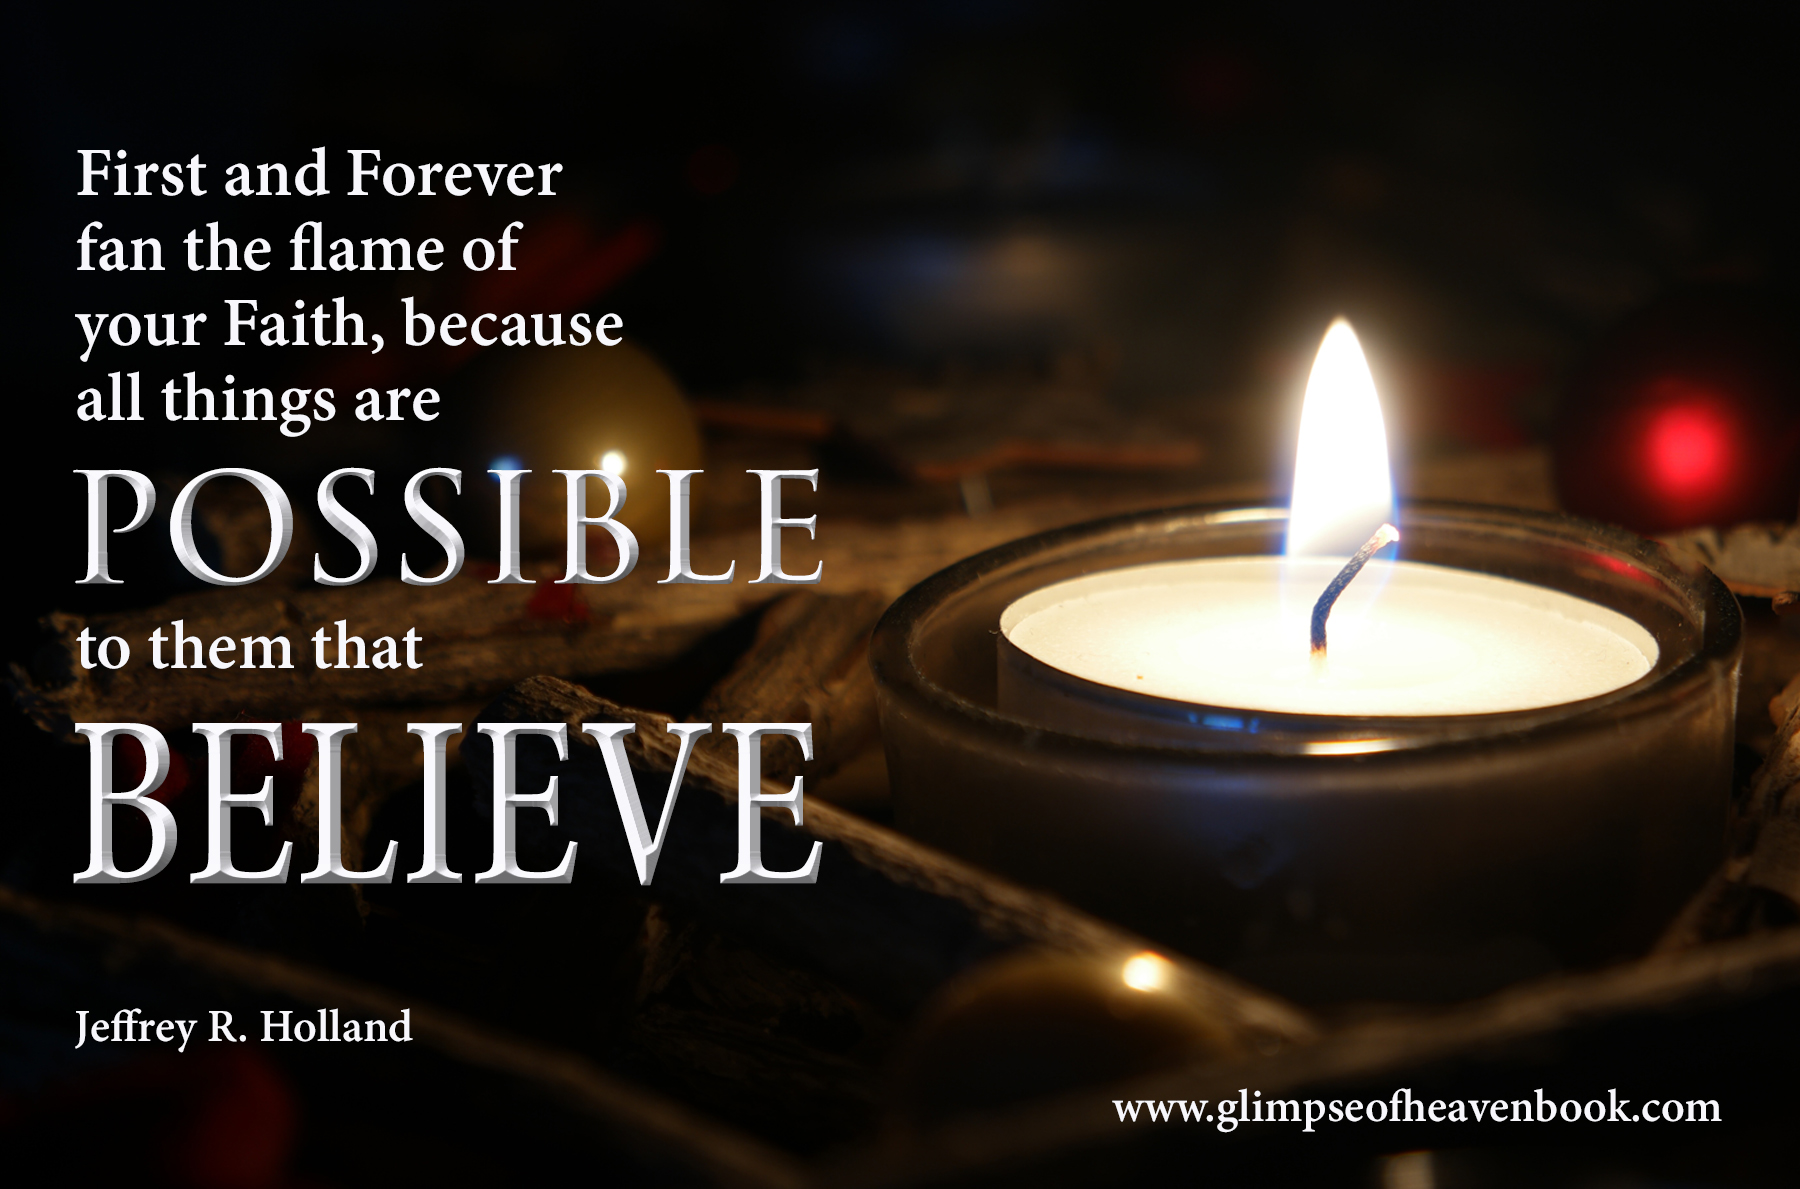 First and Forever  fan the flame of  your Faith, because  all things are possible to them that believe.  Jeffrey R. Holland